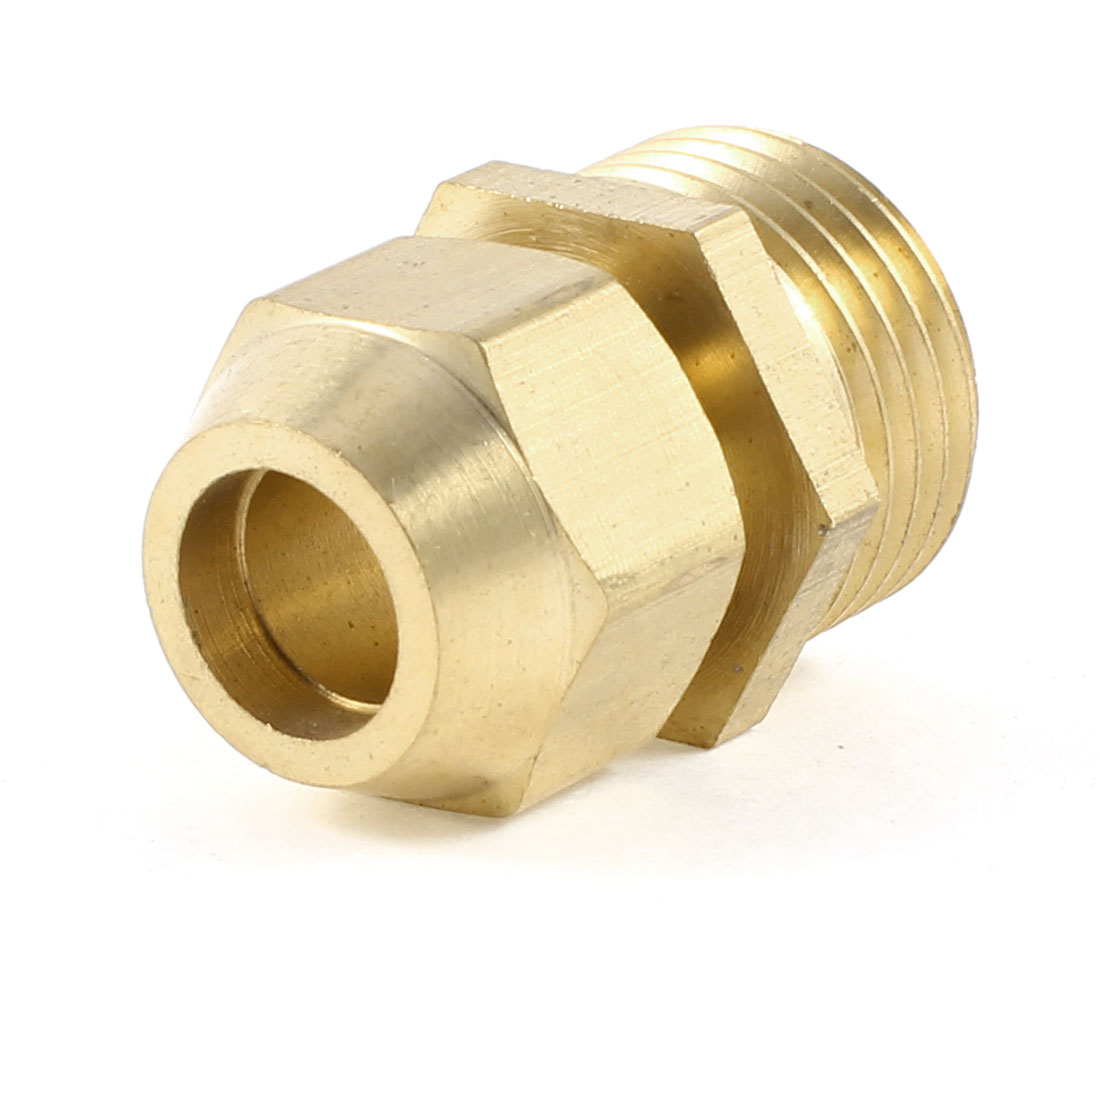 "1/2"" NPT Male Threaded to 10mm Piping Air Pneumatic Coupler Connector Gold Tone"